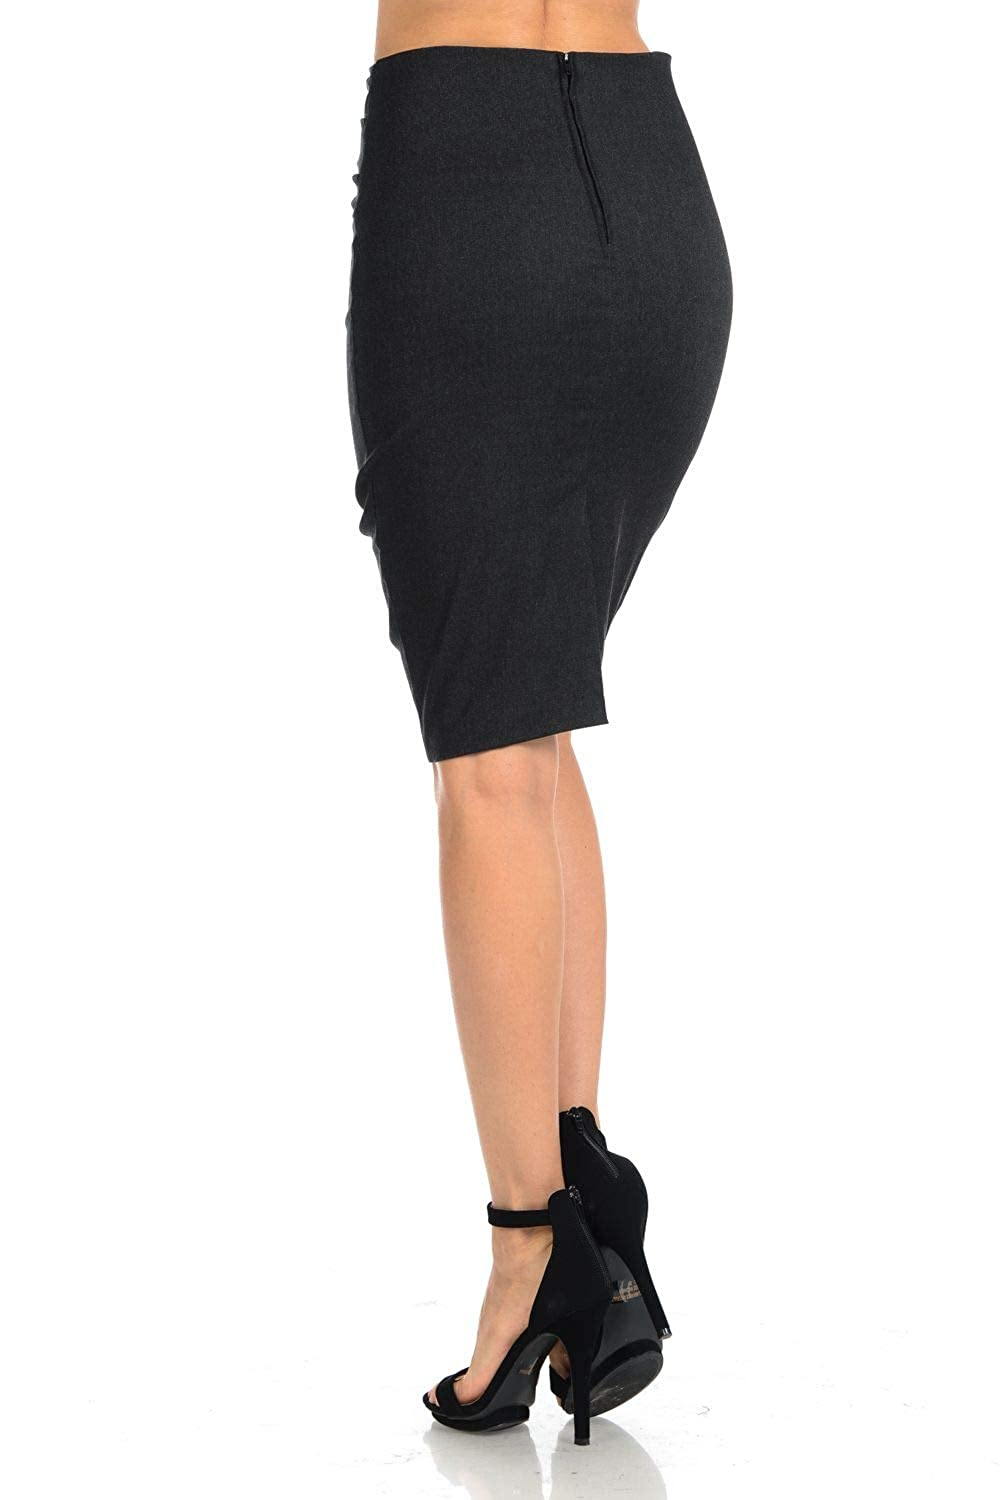 Aulin/é Collection Womens High Waisted Stretchy Slit Bodycon Pencil Skirt